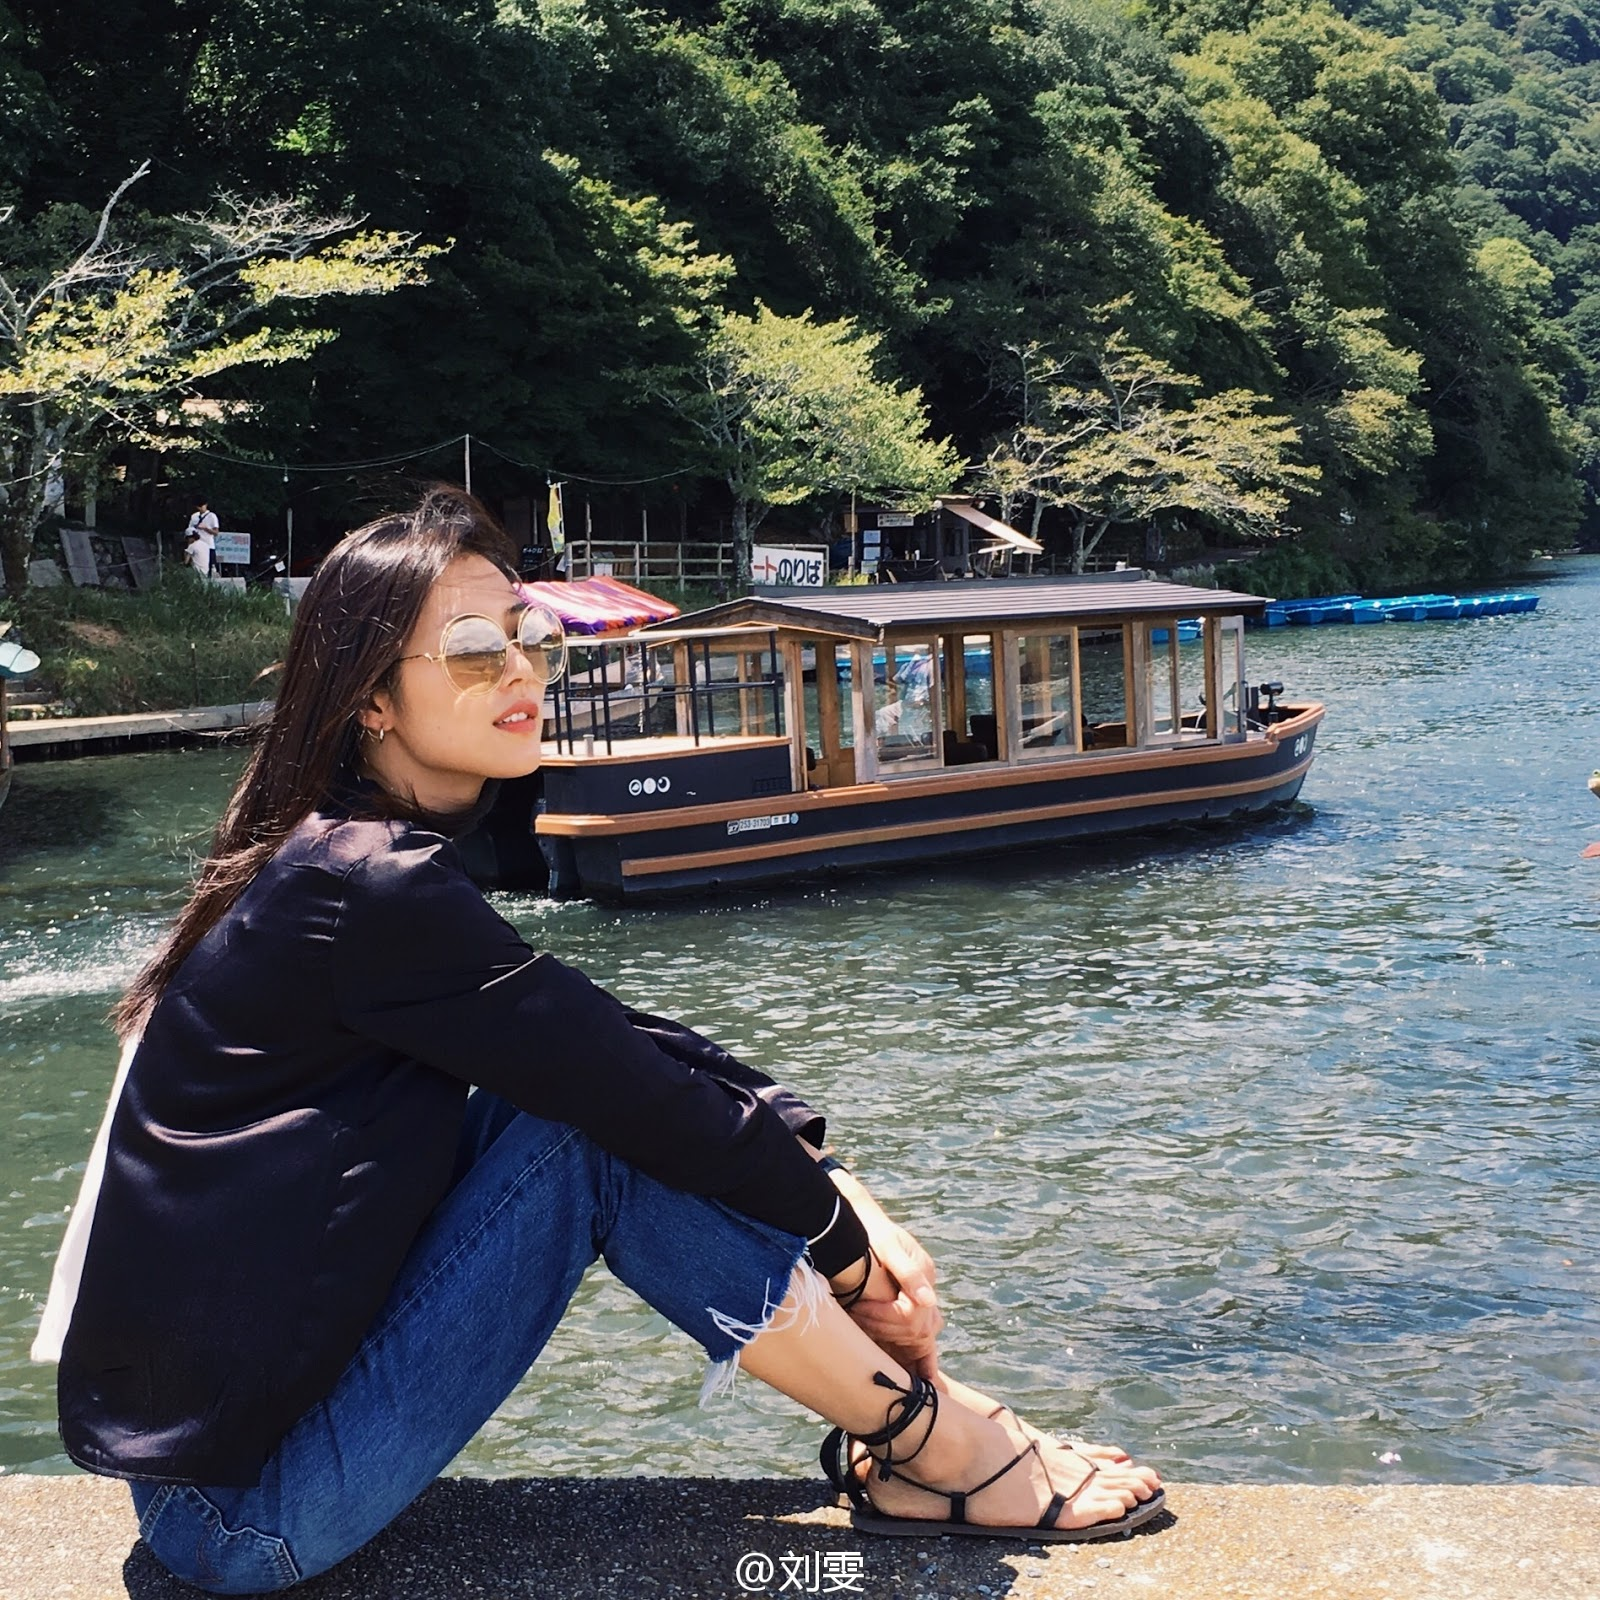 Liu Wen's Classic Vacation Style as She Explores the Mountains